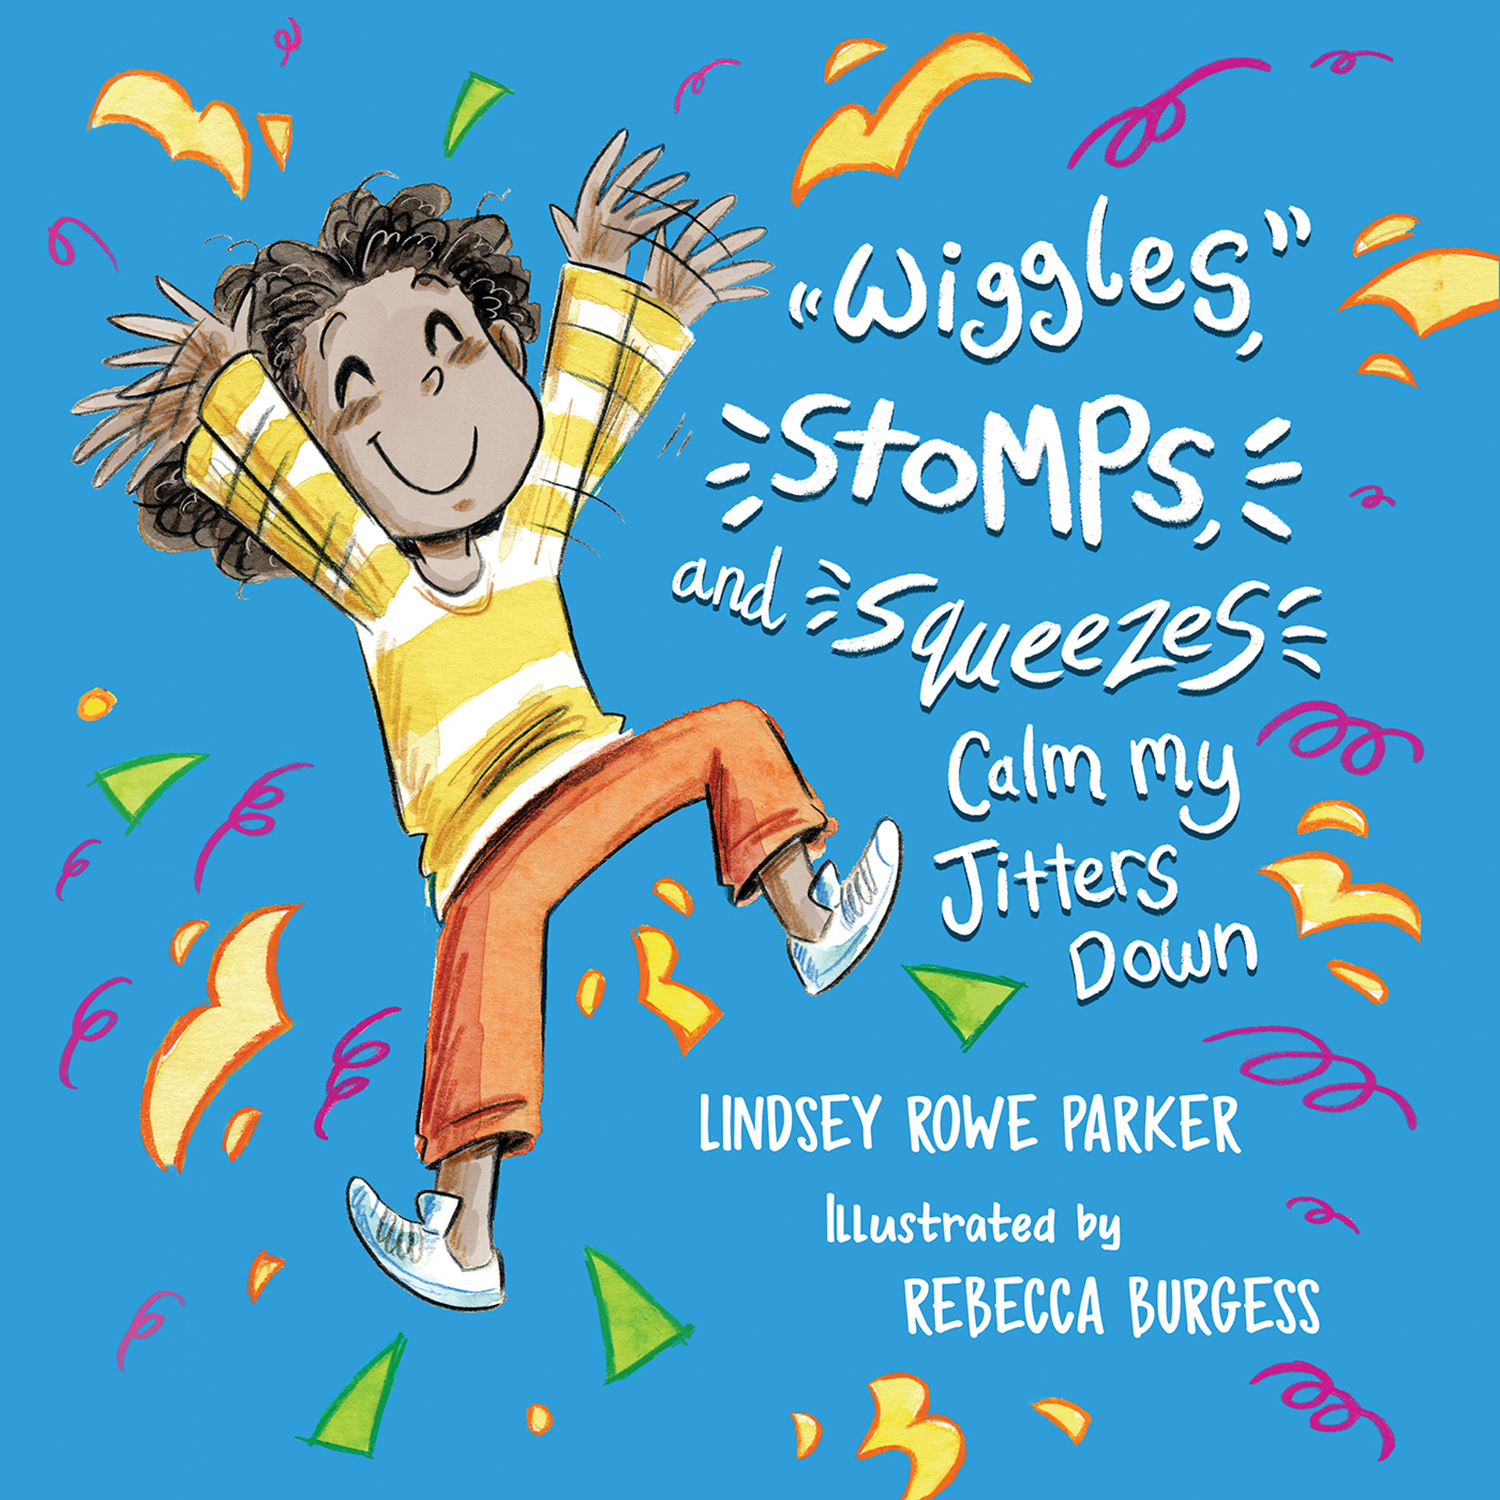 WIGGLES STOMPS AND SQUEEZES CALM MY JITTERS DOWN